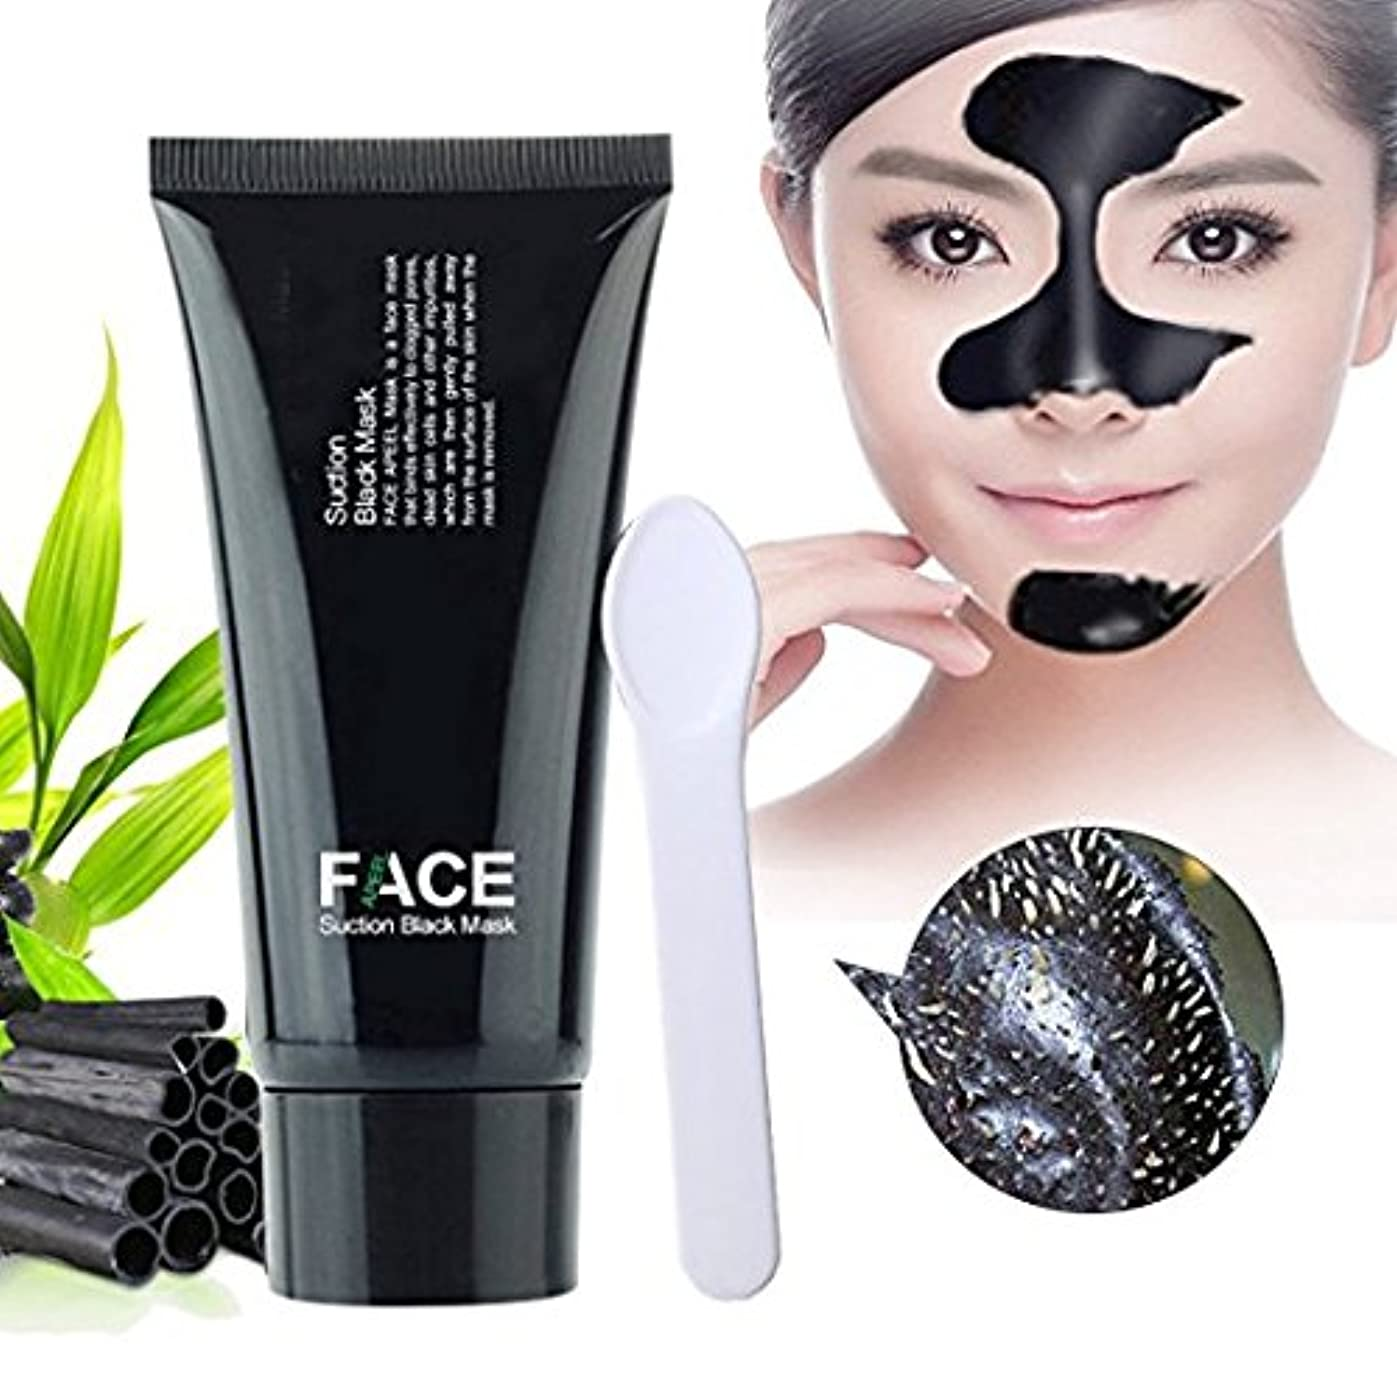 ラフ睡眠ネックレット学部長Blackhead Remover Mask, FaceApeel-Peel Off Black Head Acne Treatments,Face Cleaning Mask+Spoon